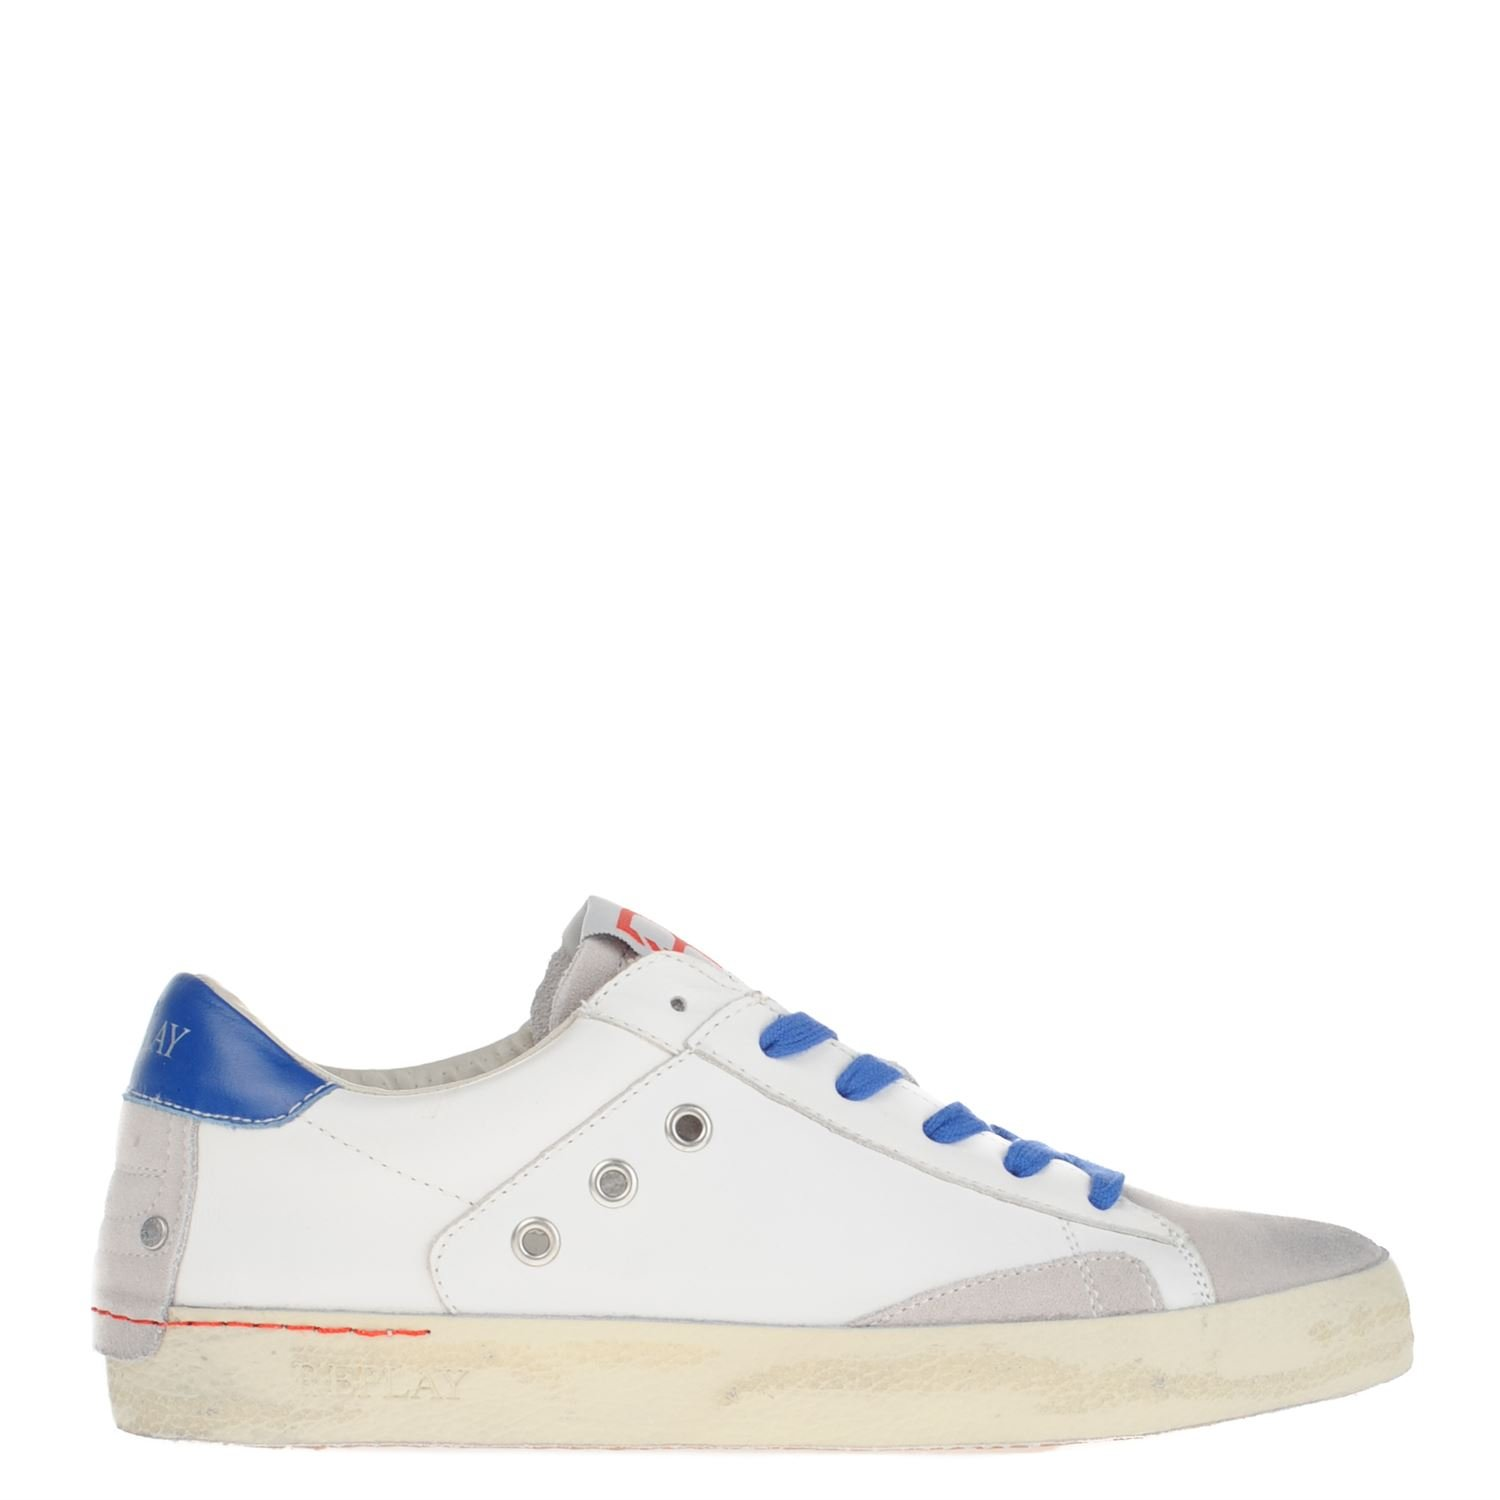 055d591cb7e Replay heren lage sneakers wit